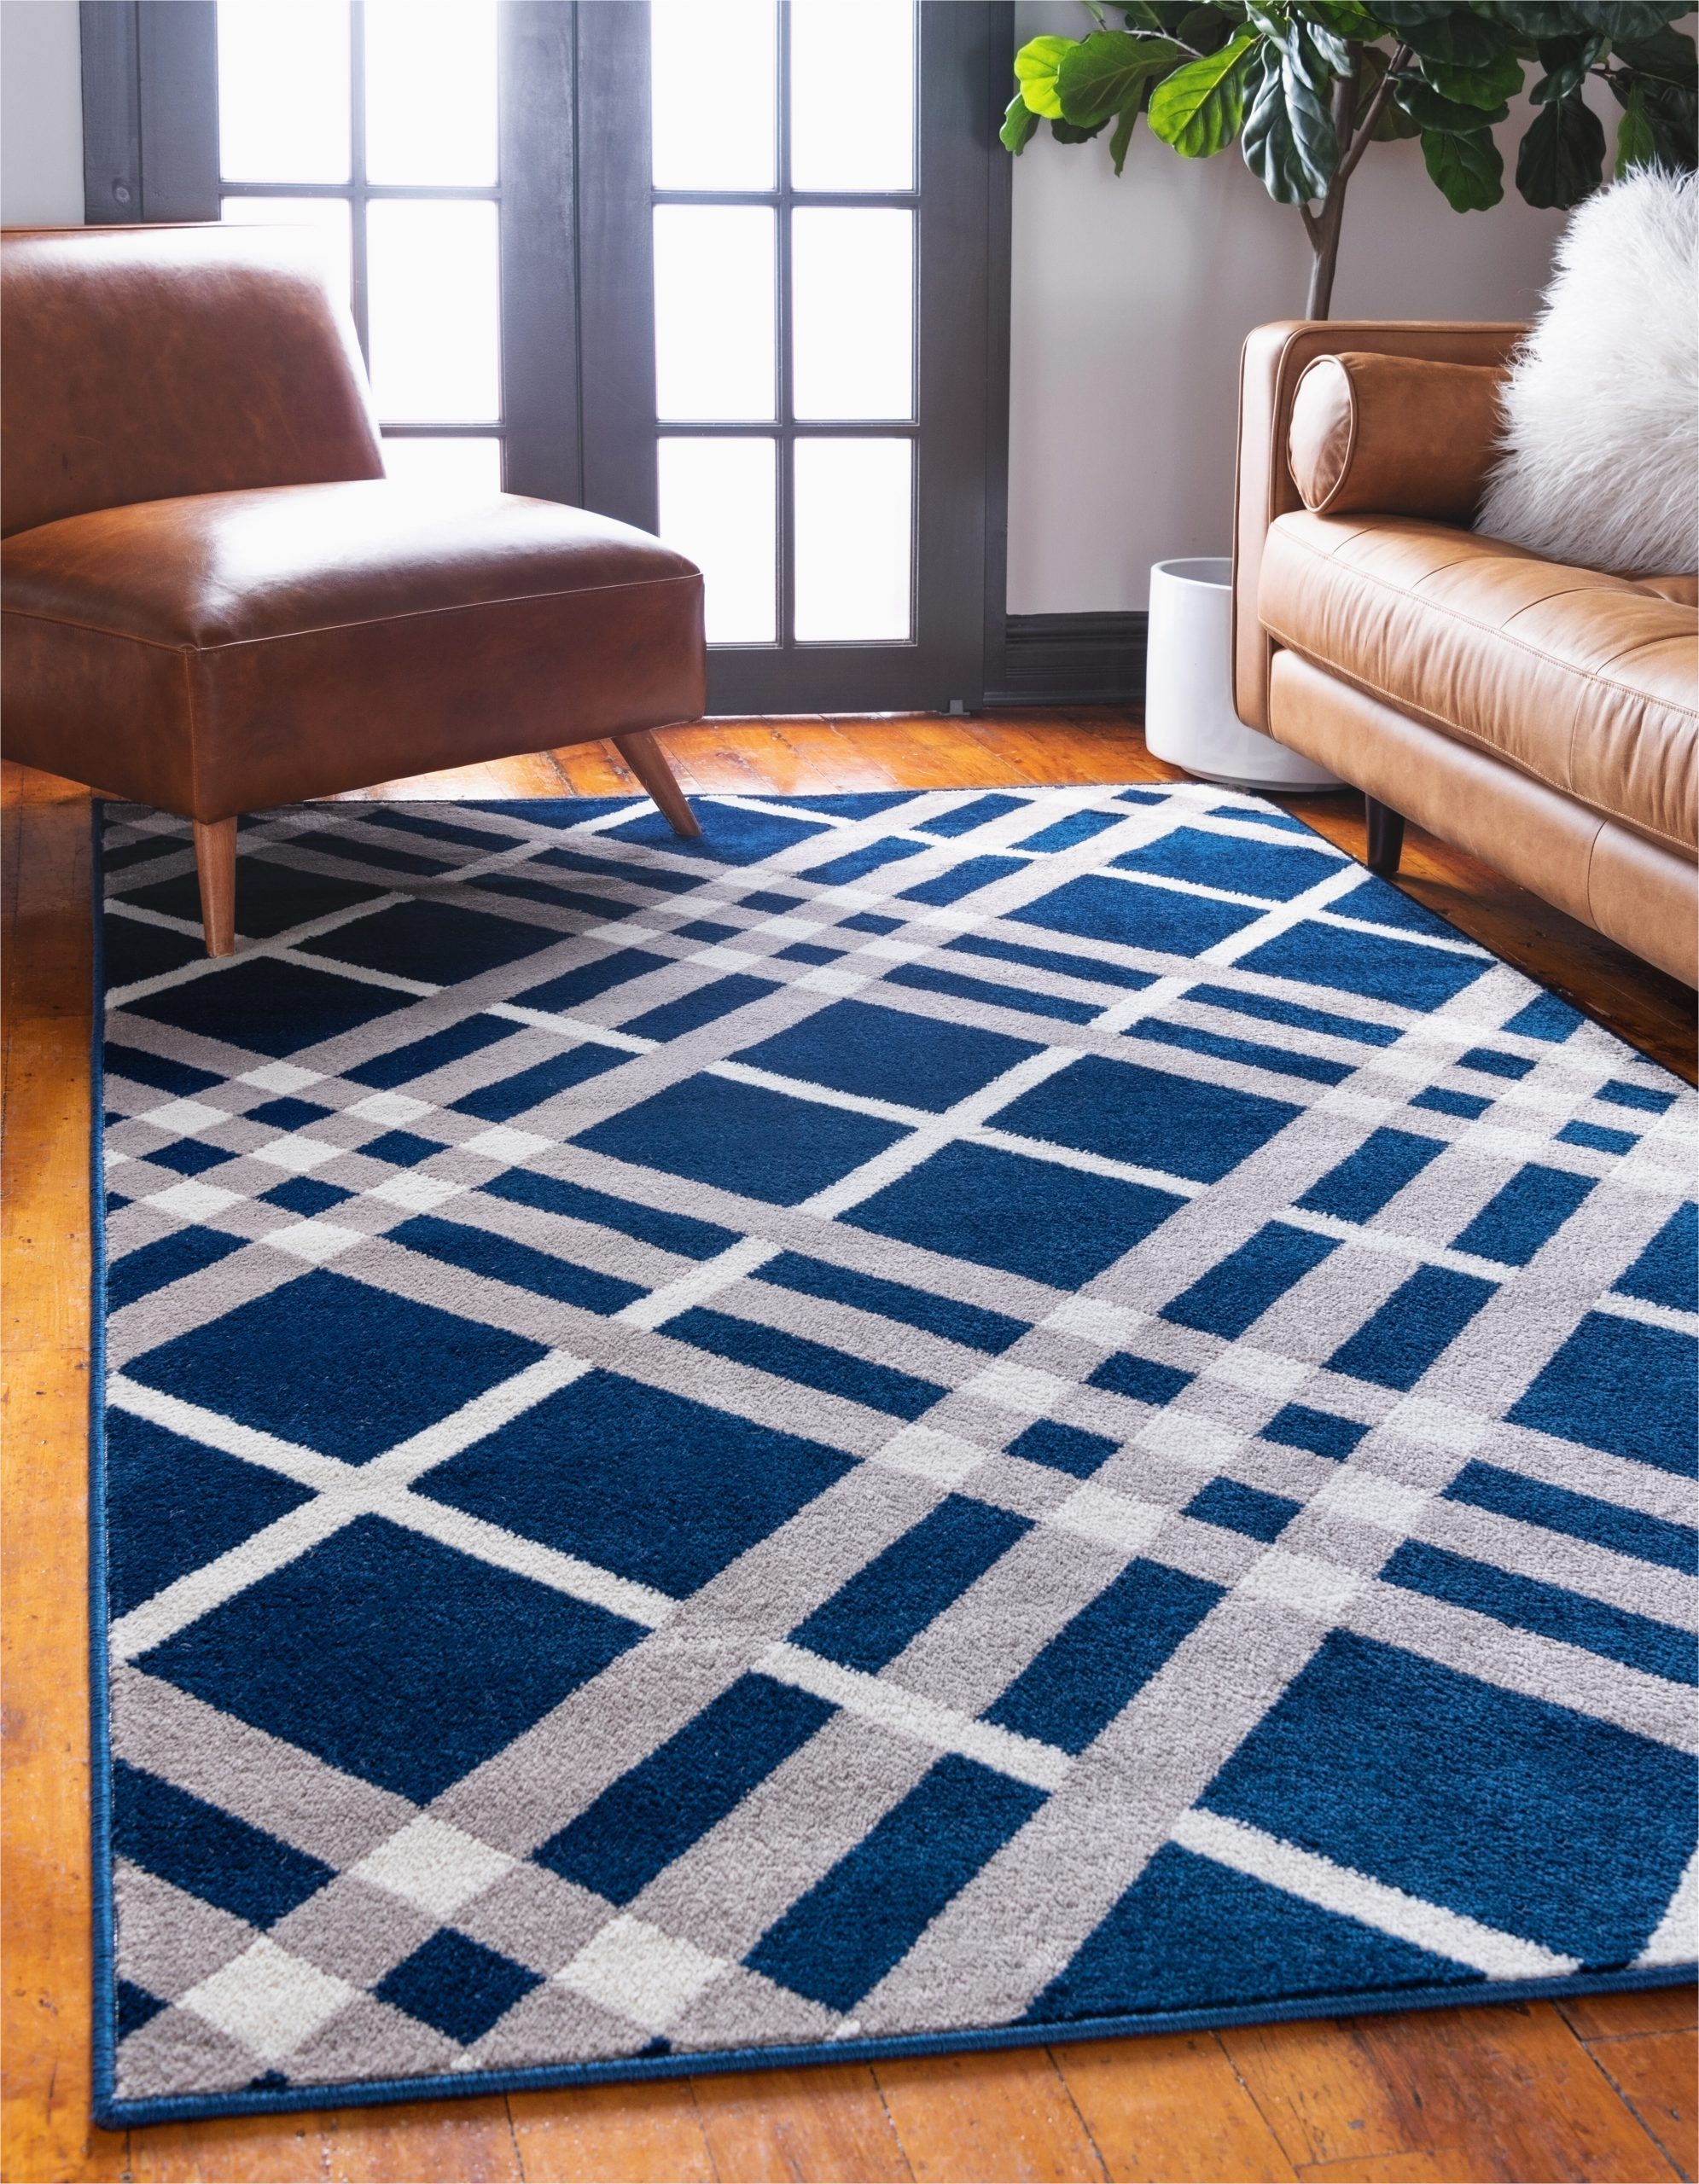 plaid navy blue area rug